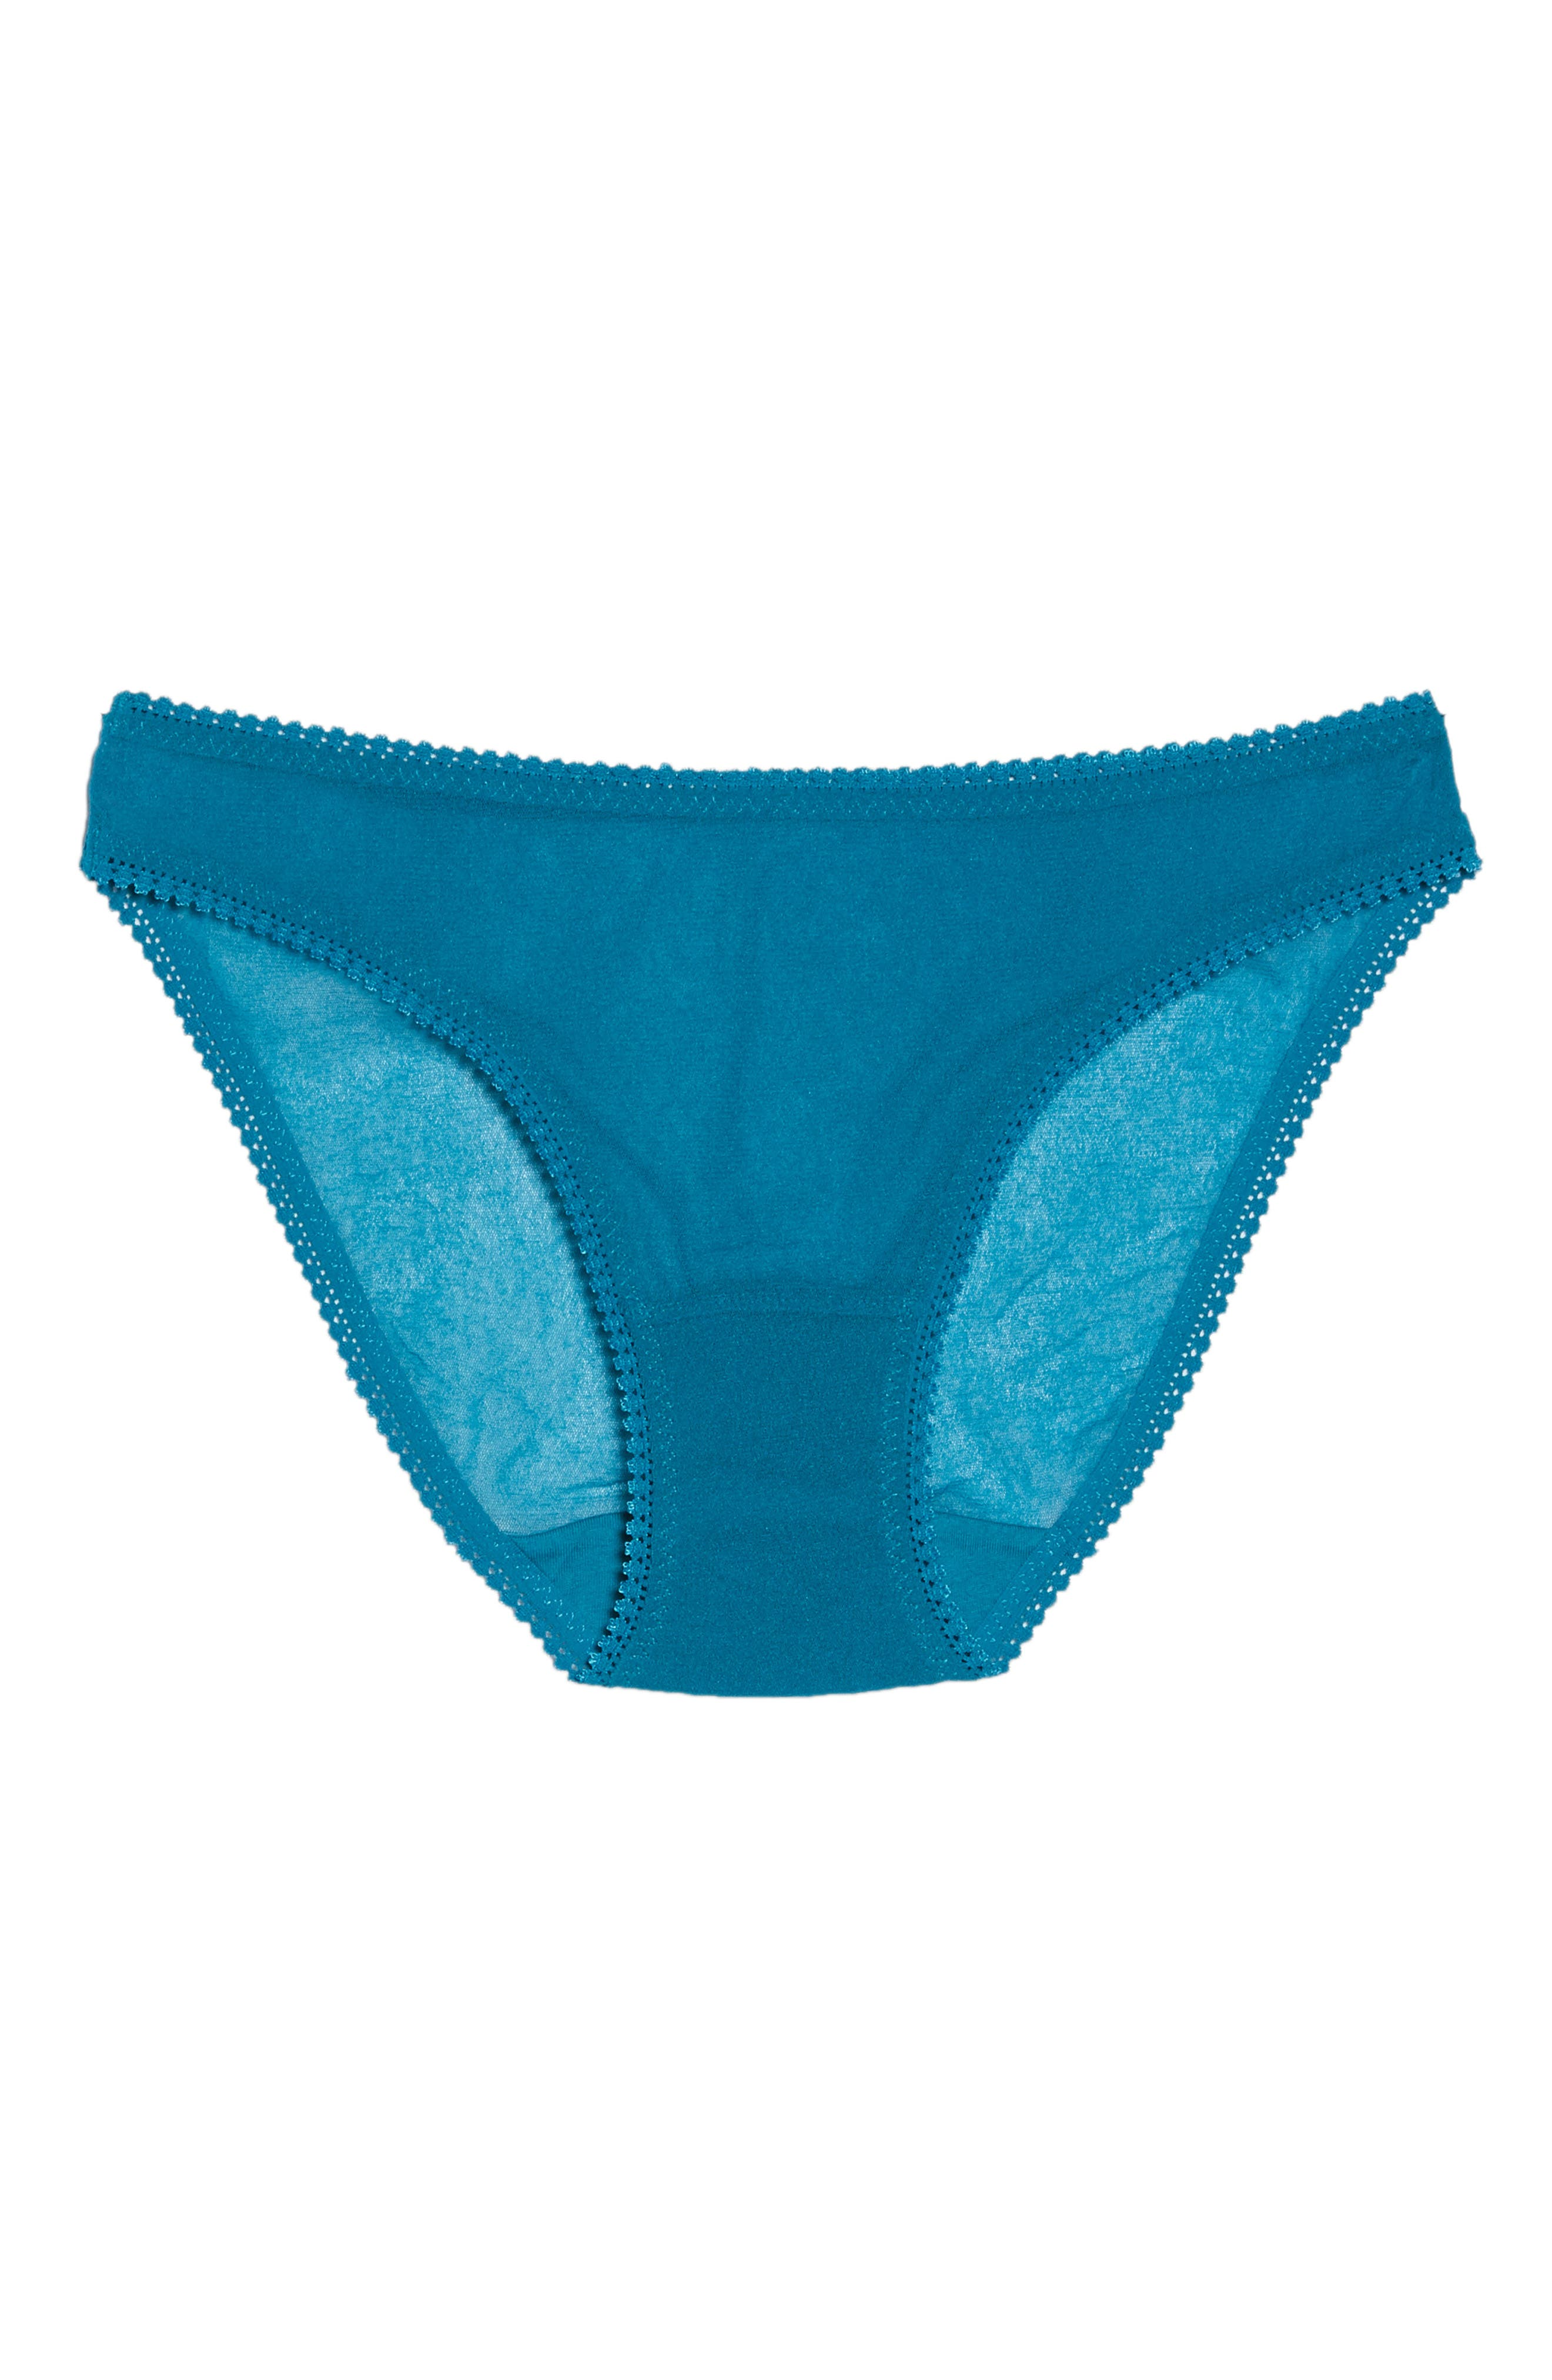 Mesh Bikini,                             Alternate thumbnail 6, color,                             OCEAN DEPTHS